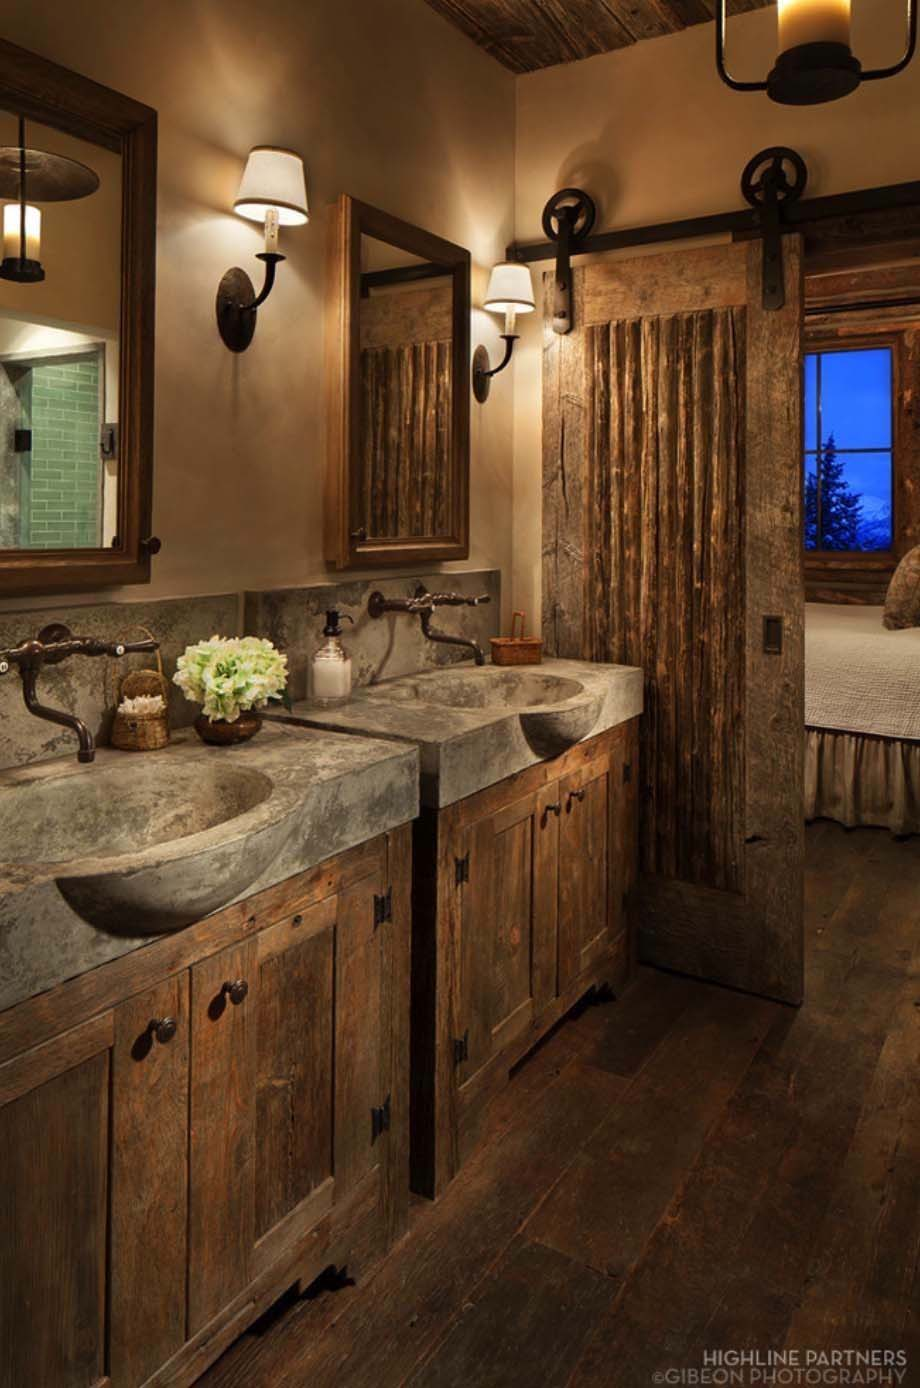 17 inspiring rustic bathroom decor ideas for cozy home for Bathroom design ideas pictures